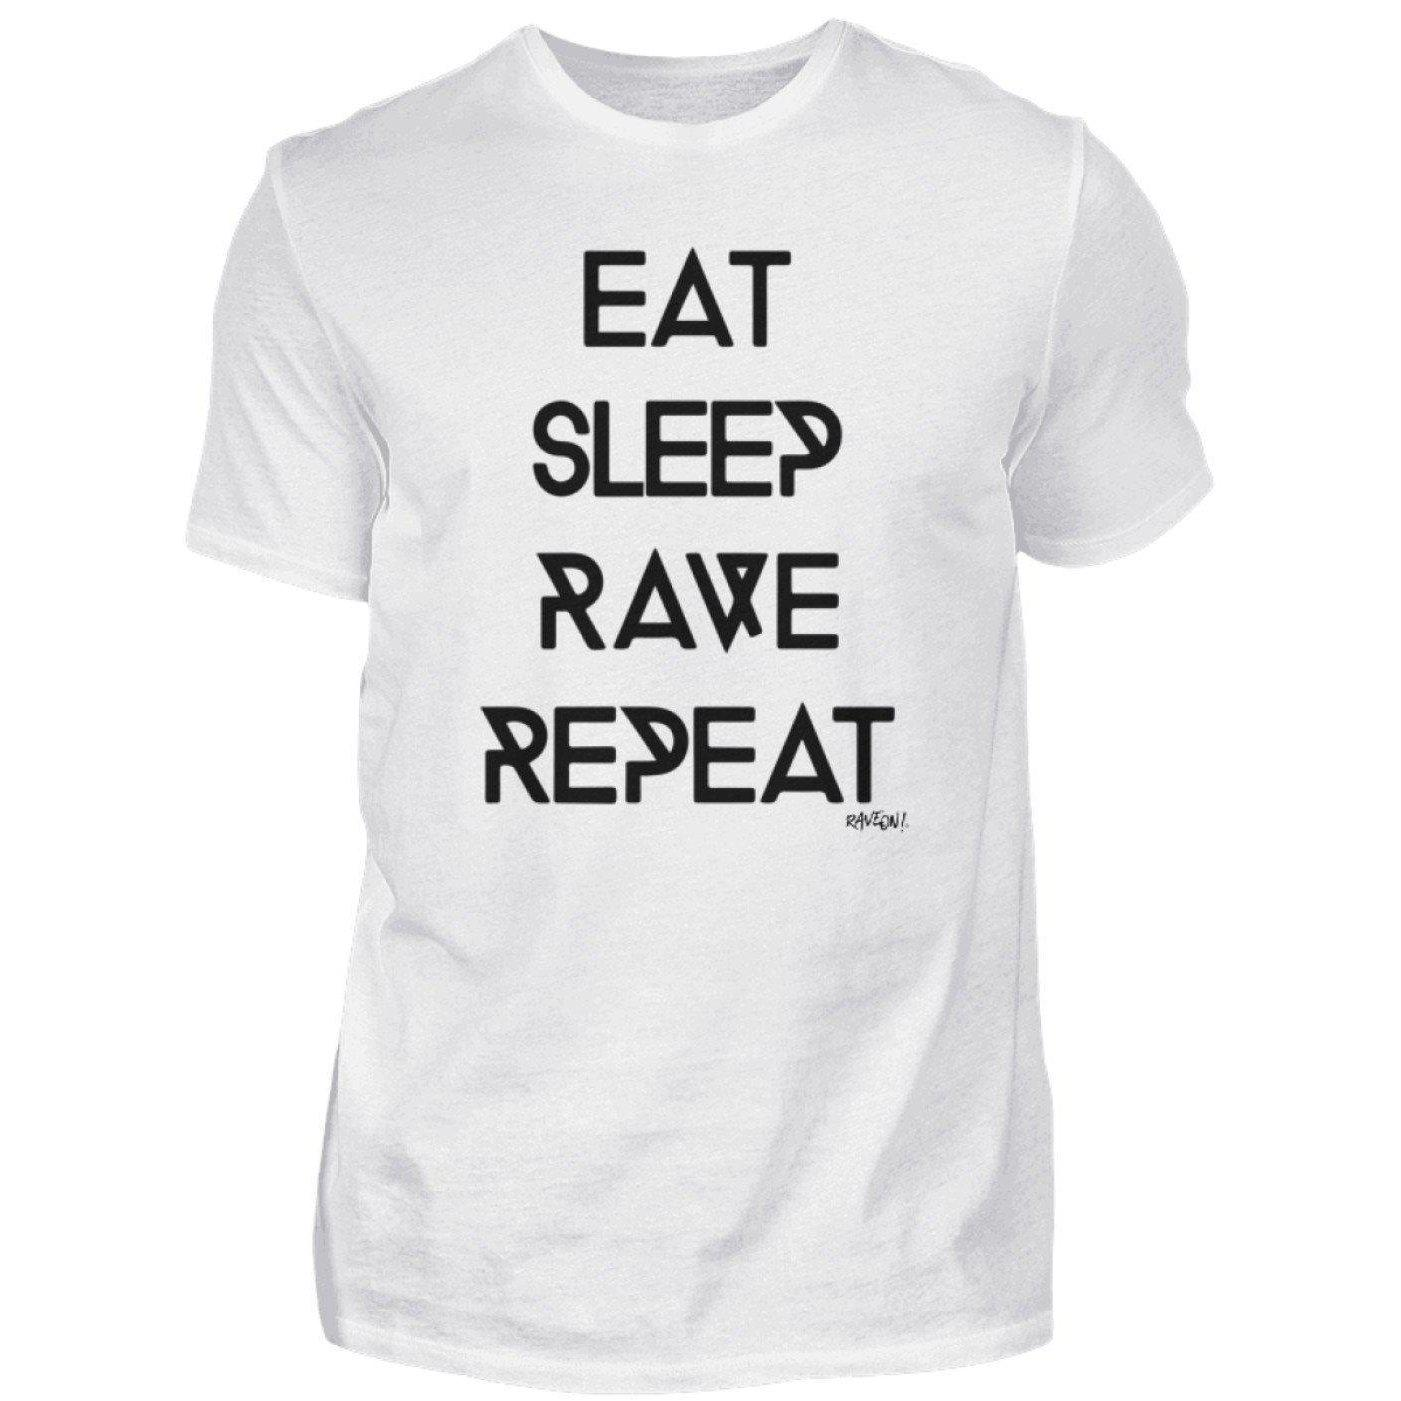 Eat sleep Rave Repeat Rave On!® - Men Shirt Men Basic T-Shirt White / S - Rave On!® the club & techno scene shop for cool young fashion streetwear style & fashion outfits + sexy festival 420 stuff